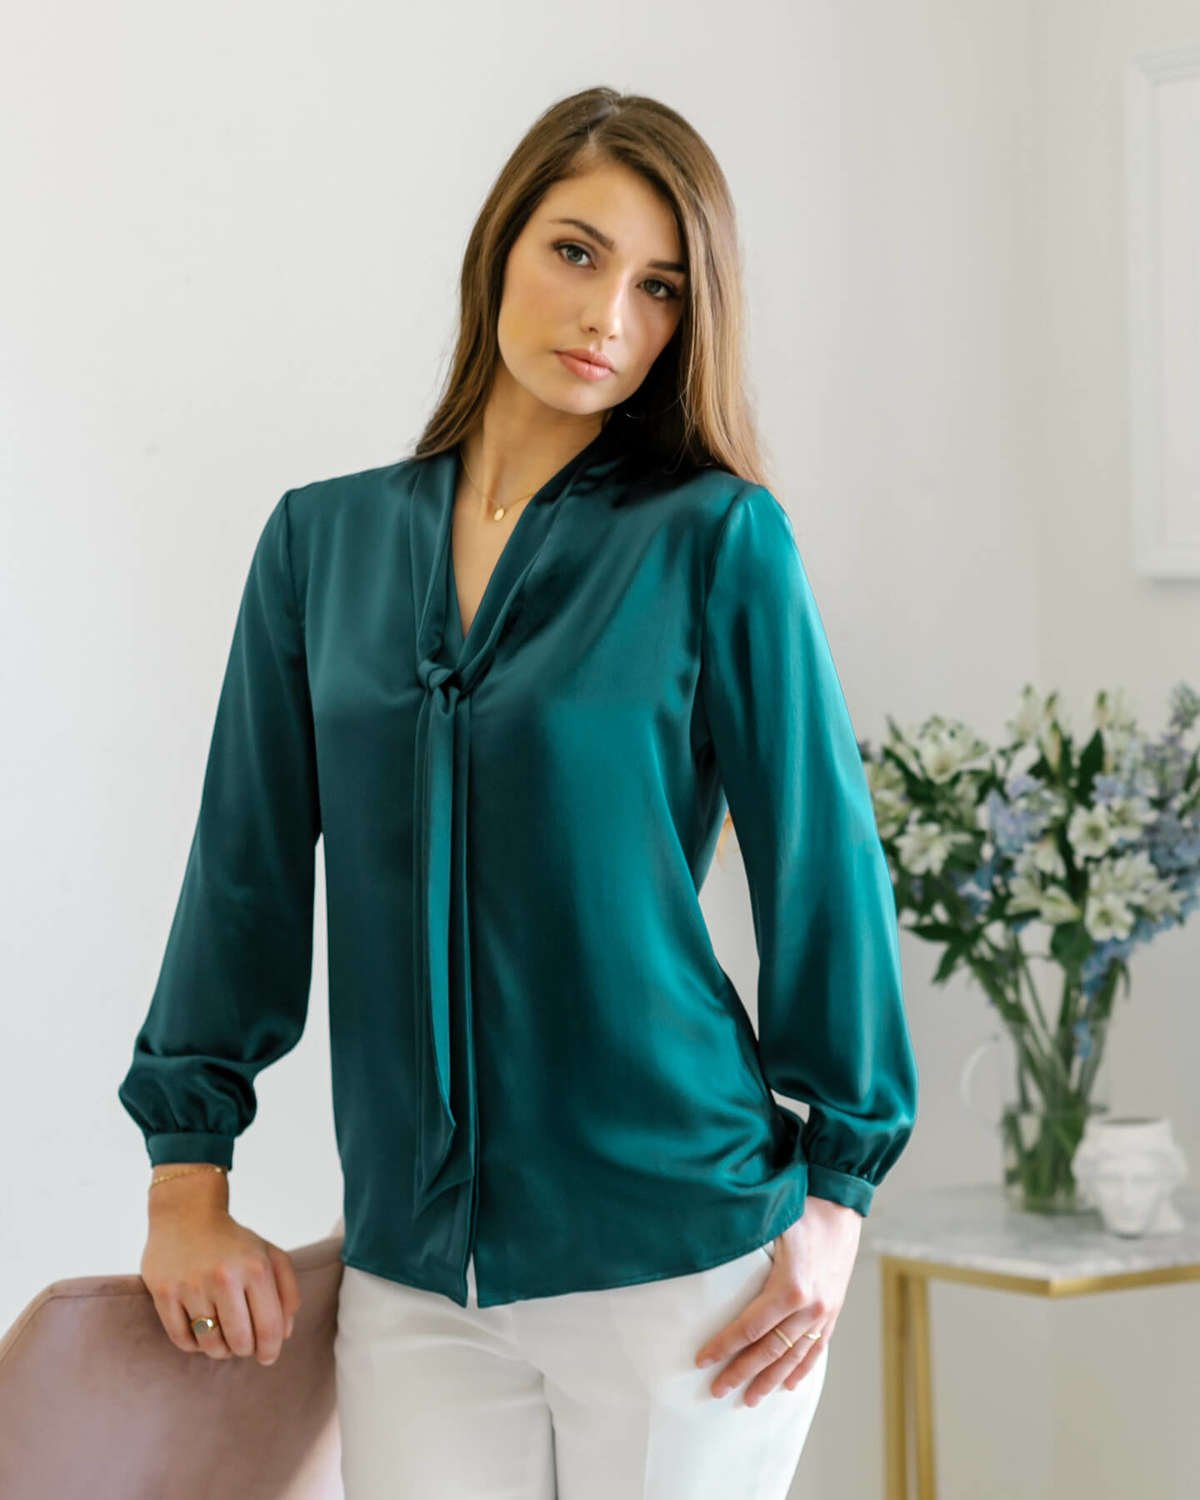 Vinci Silk Bow Blouse - Emerald Green